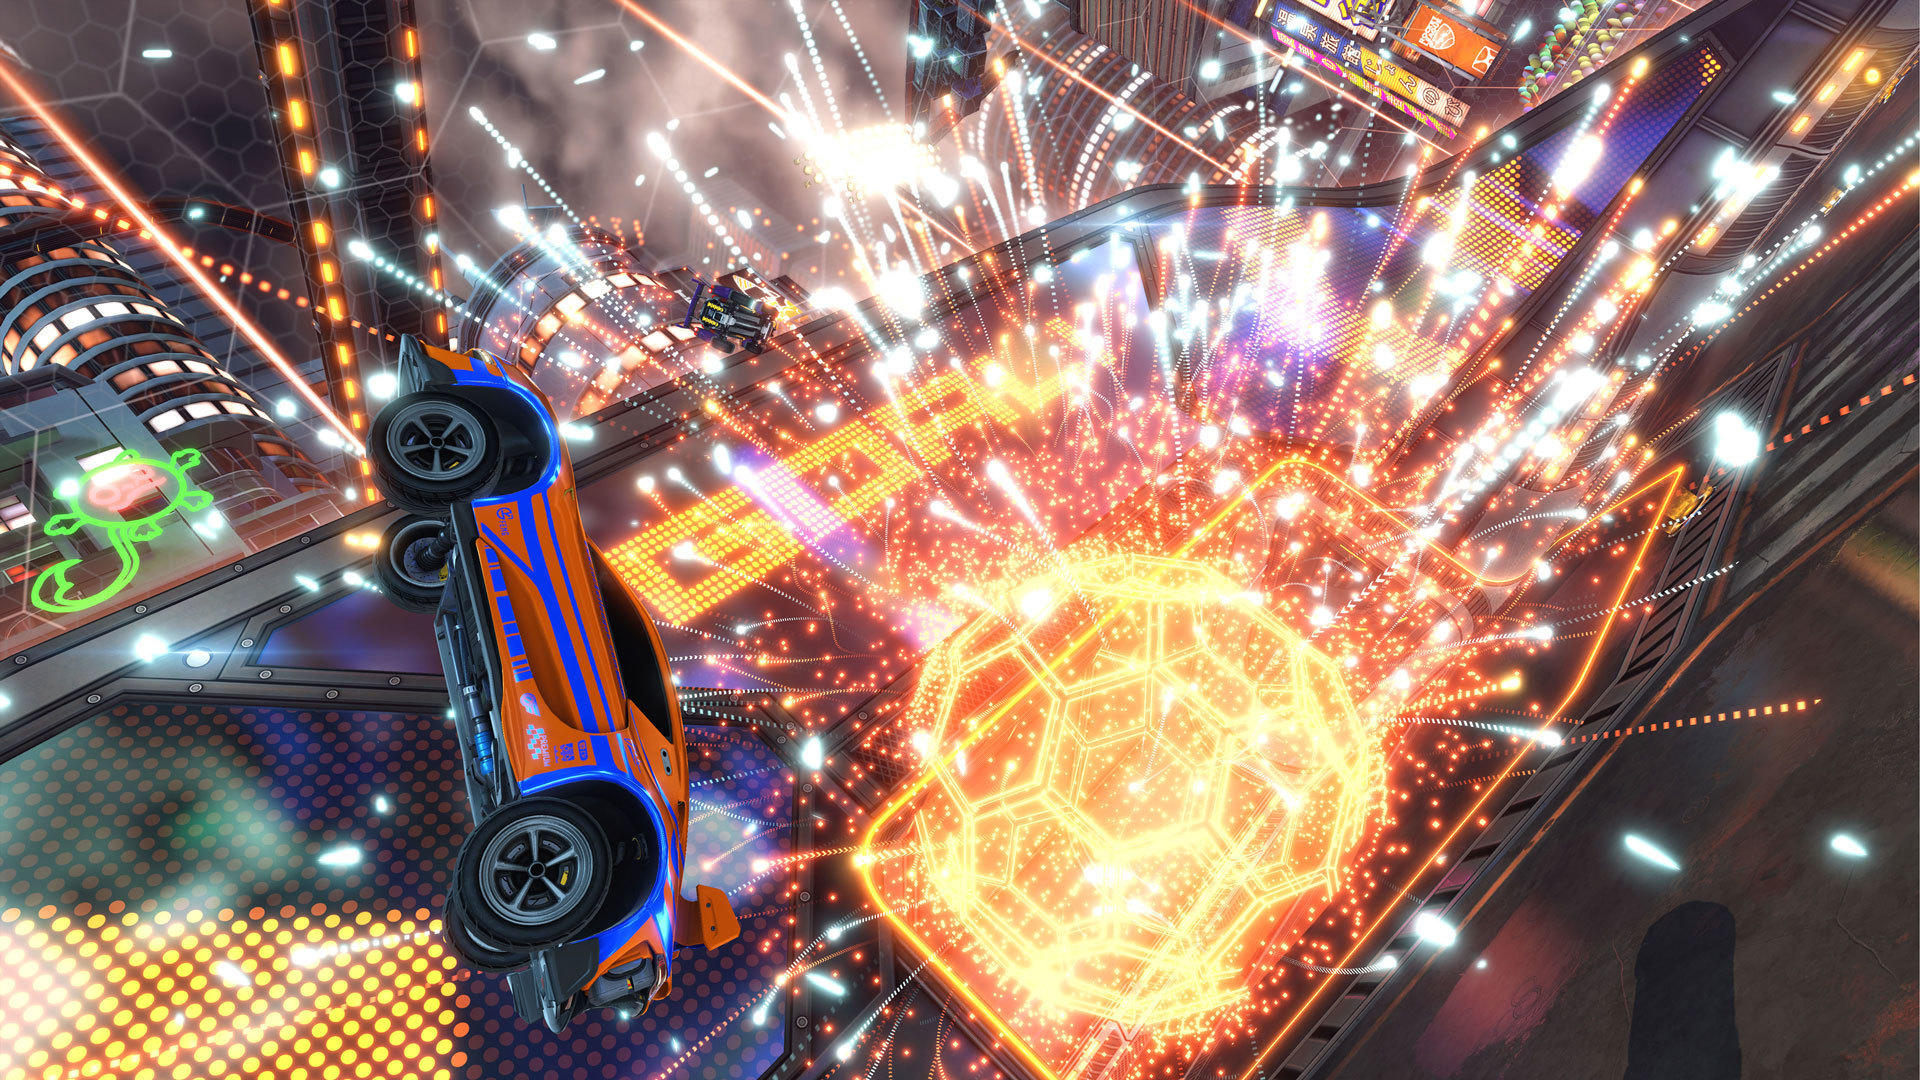 Rocket League's March Update allows players to trade in their blueprints